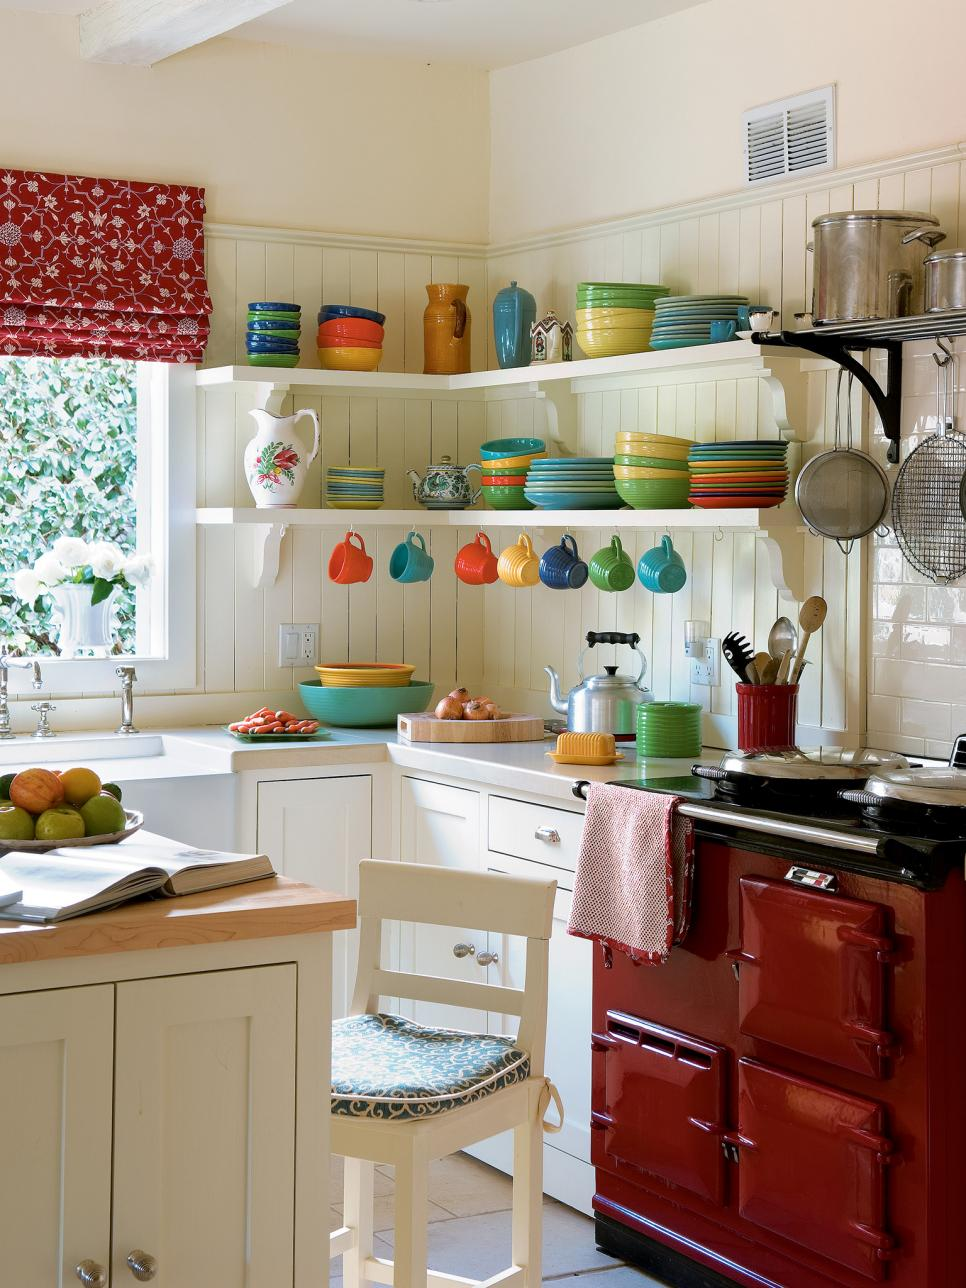 Cool Pictures of Small Kitchen Design Ideas From HGTV | HGTV kitchen designs for small kitchens